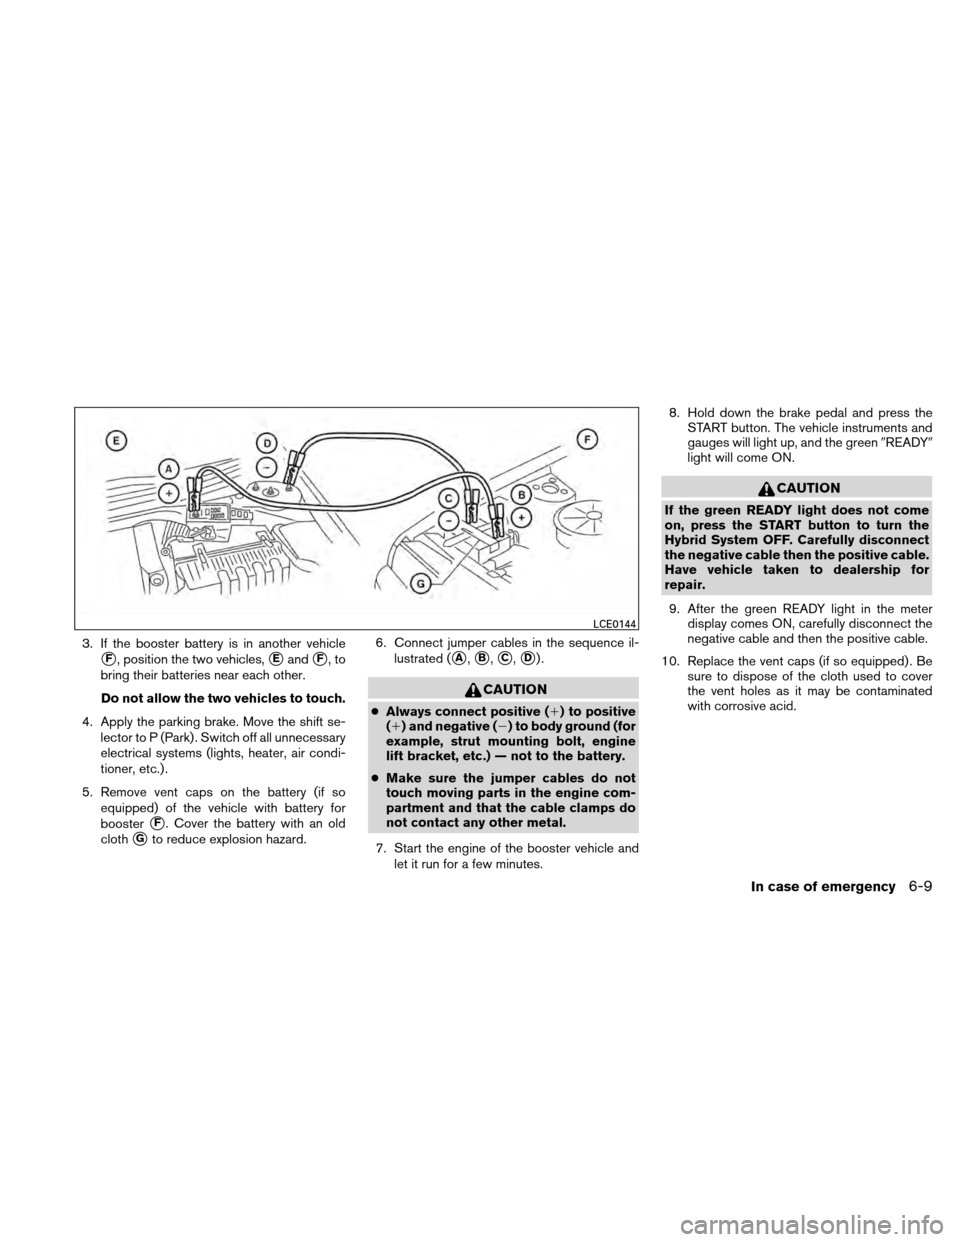 NISSAN ALTIMA HYBRID 2010 L32A / 4.G Owners Manual, Page 330